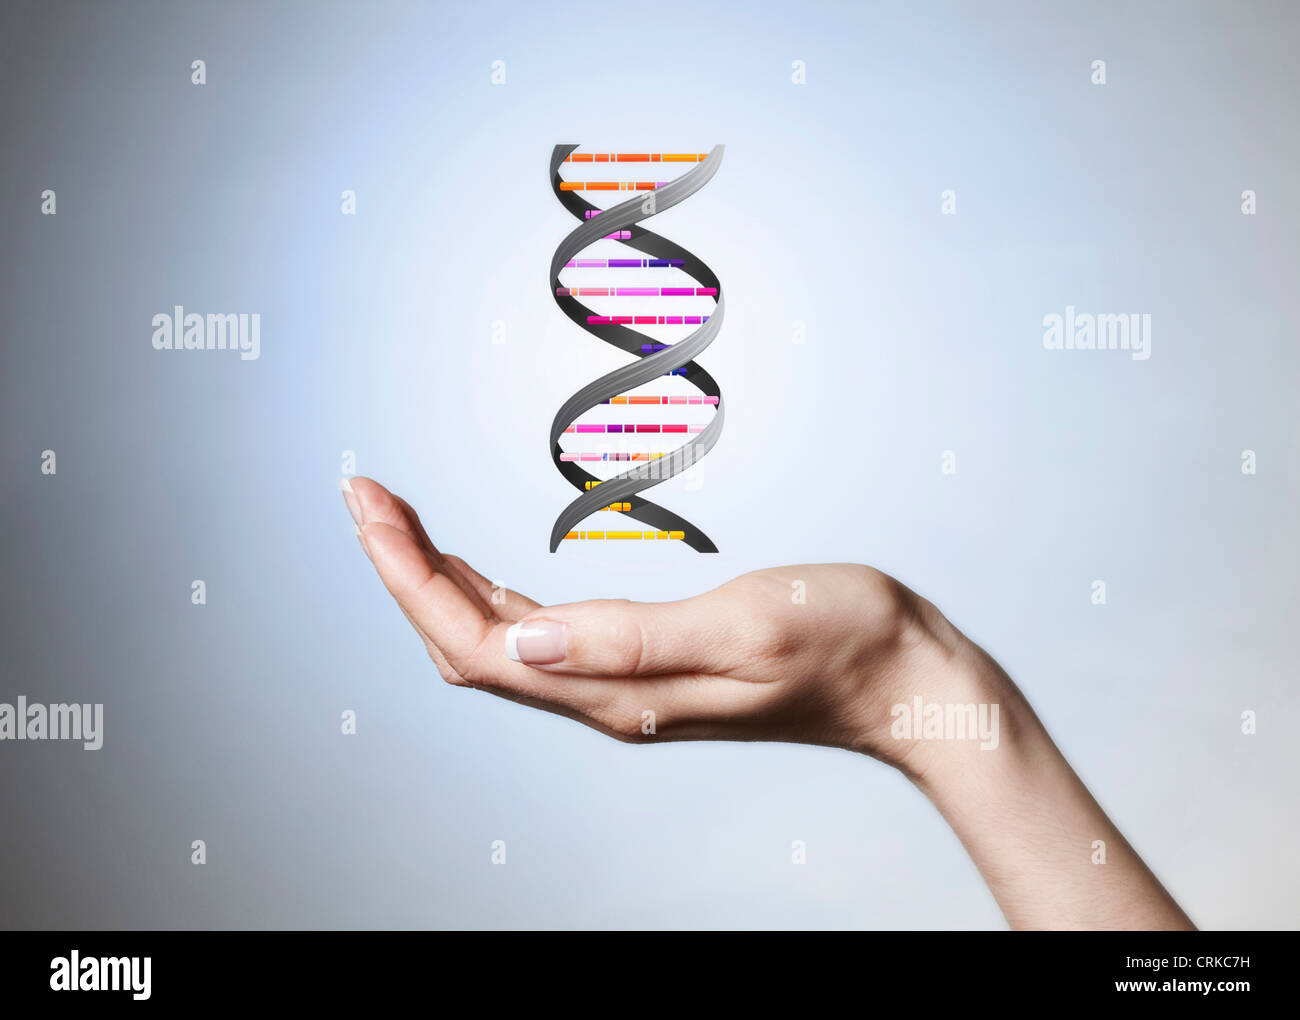 Hand holding strain of DNA - Stock Image